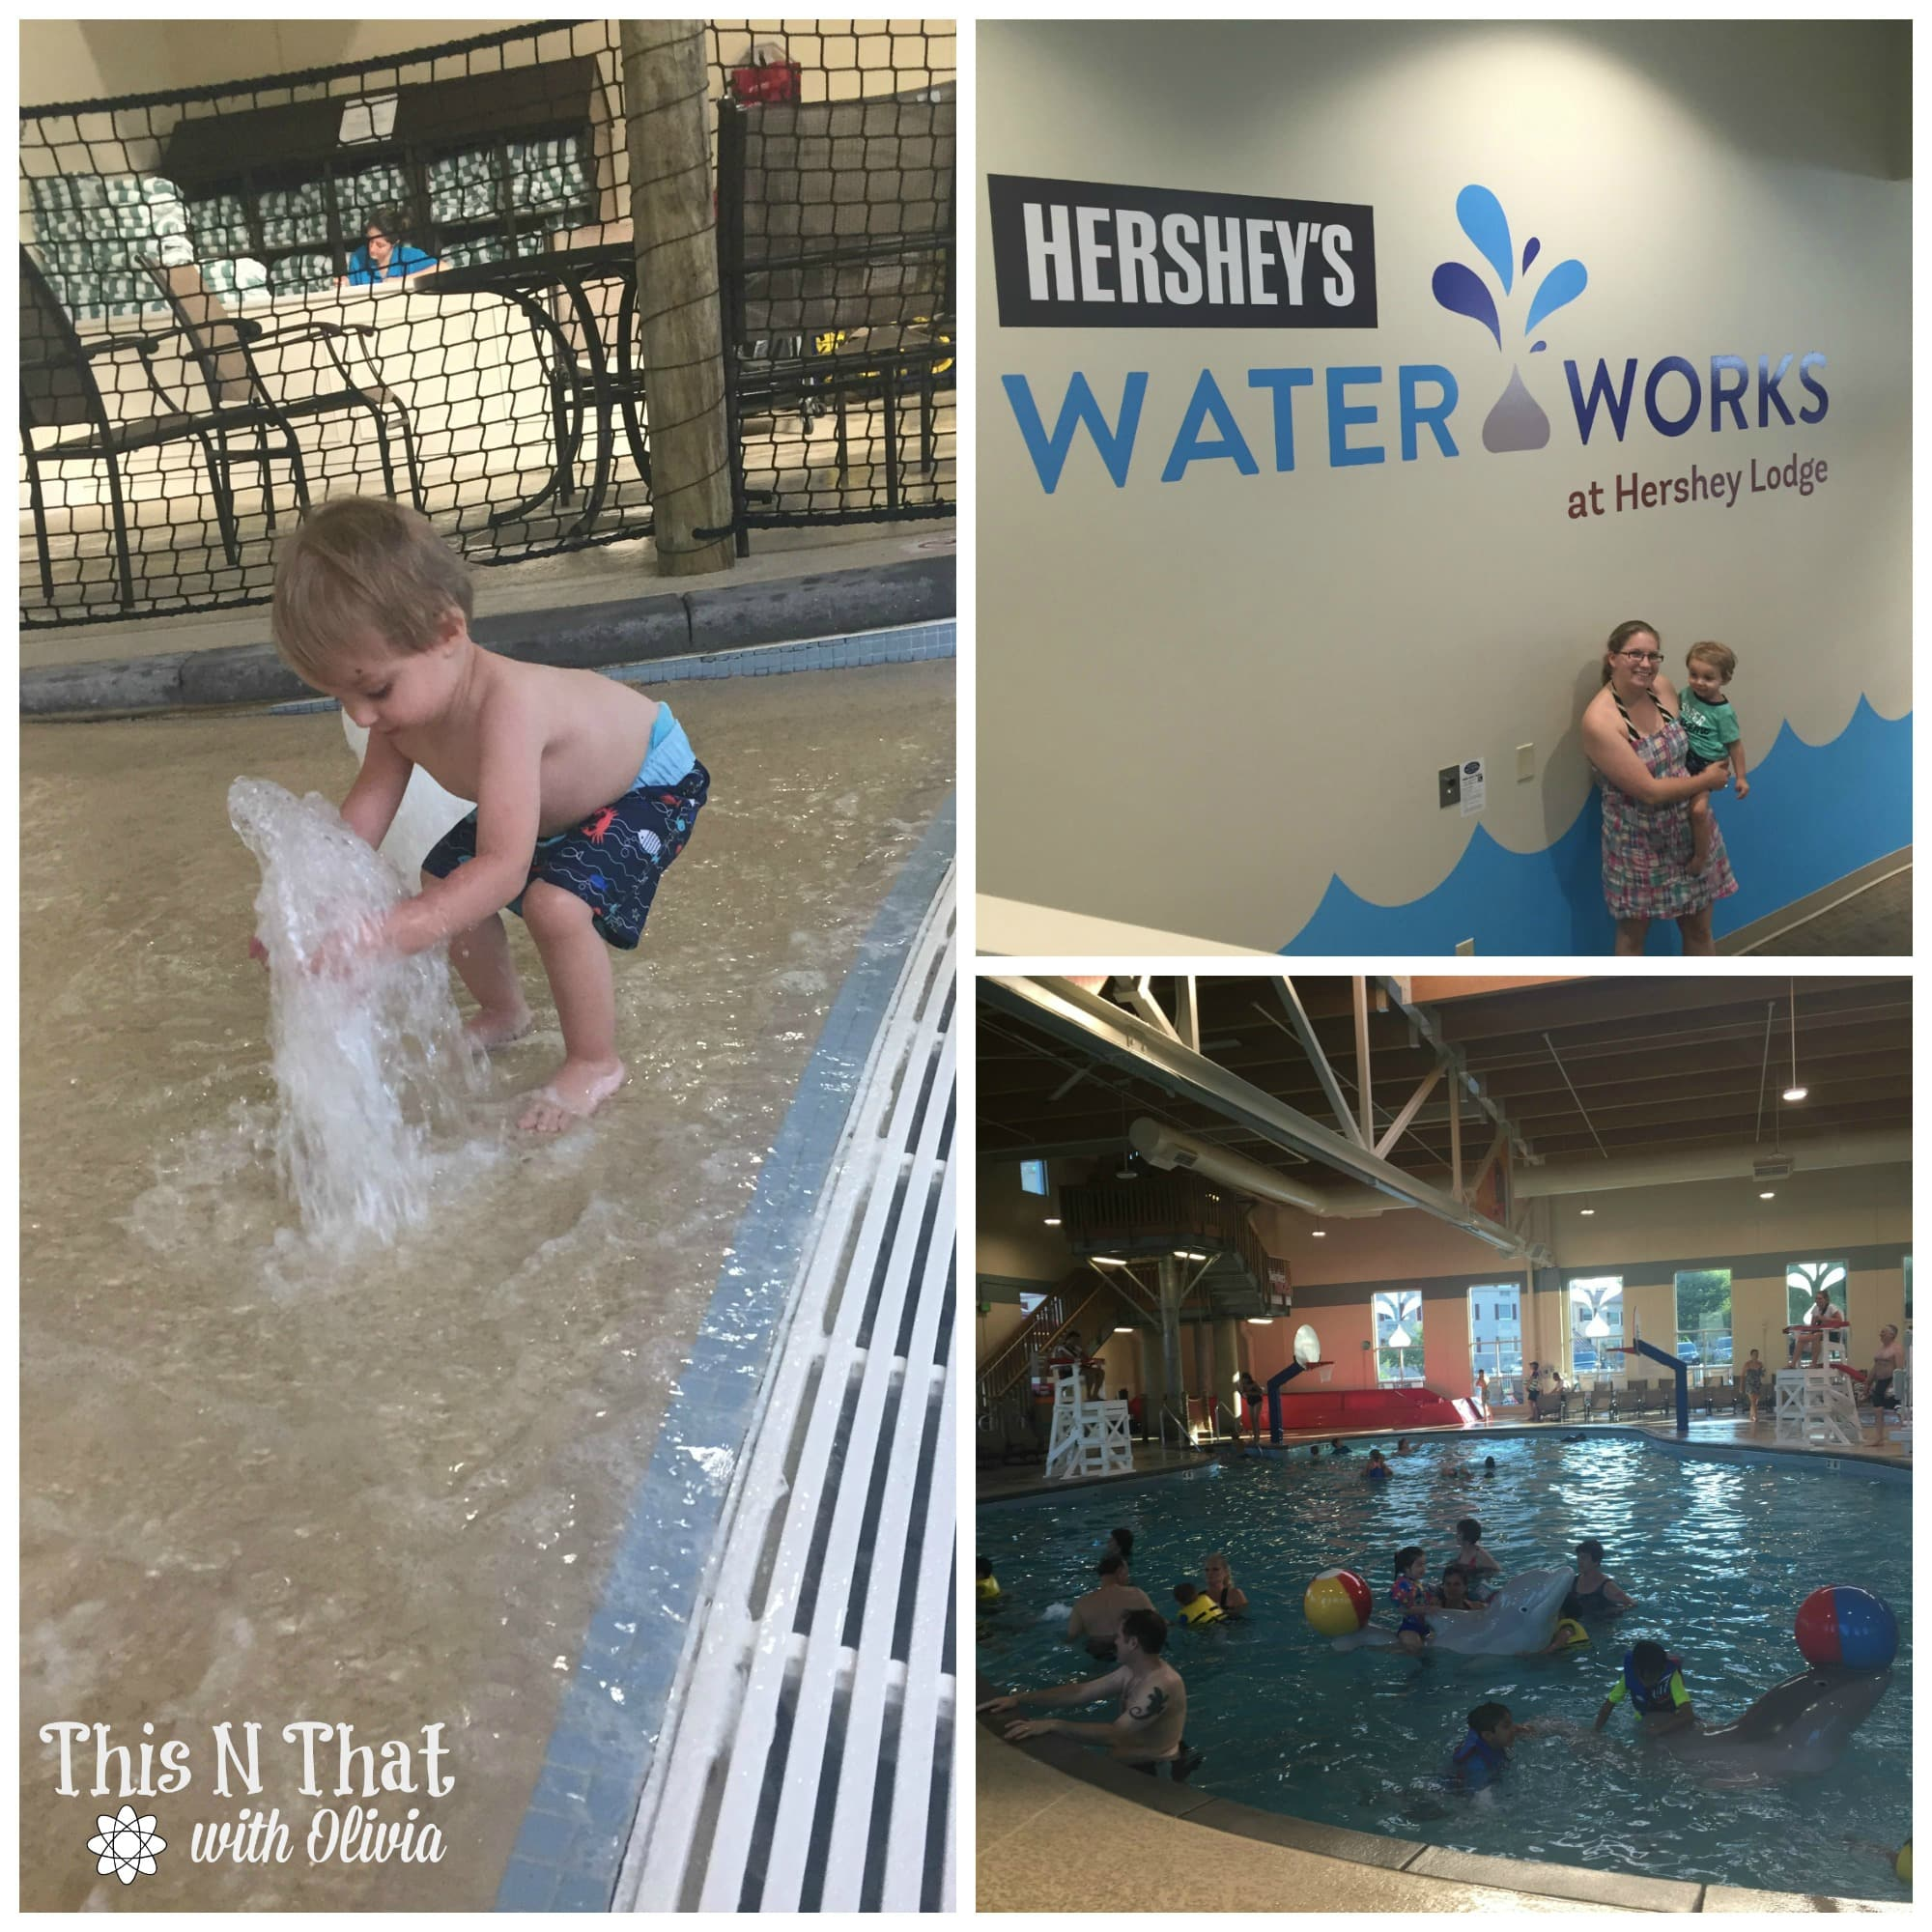 5 Reasons to Stay at the Hershey Lodge | ThisNThatwithOlivia.com